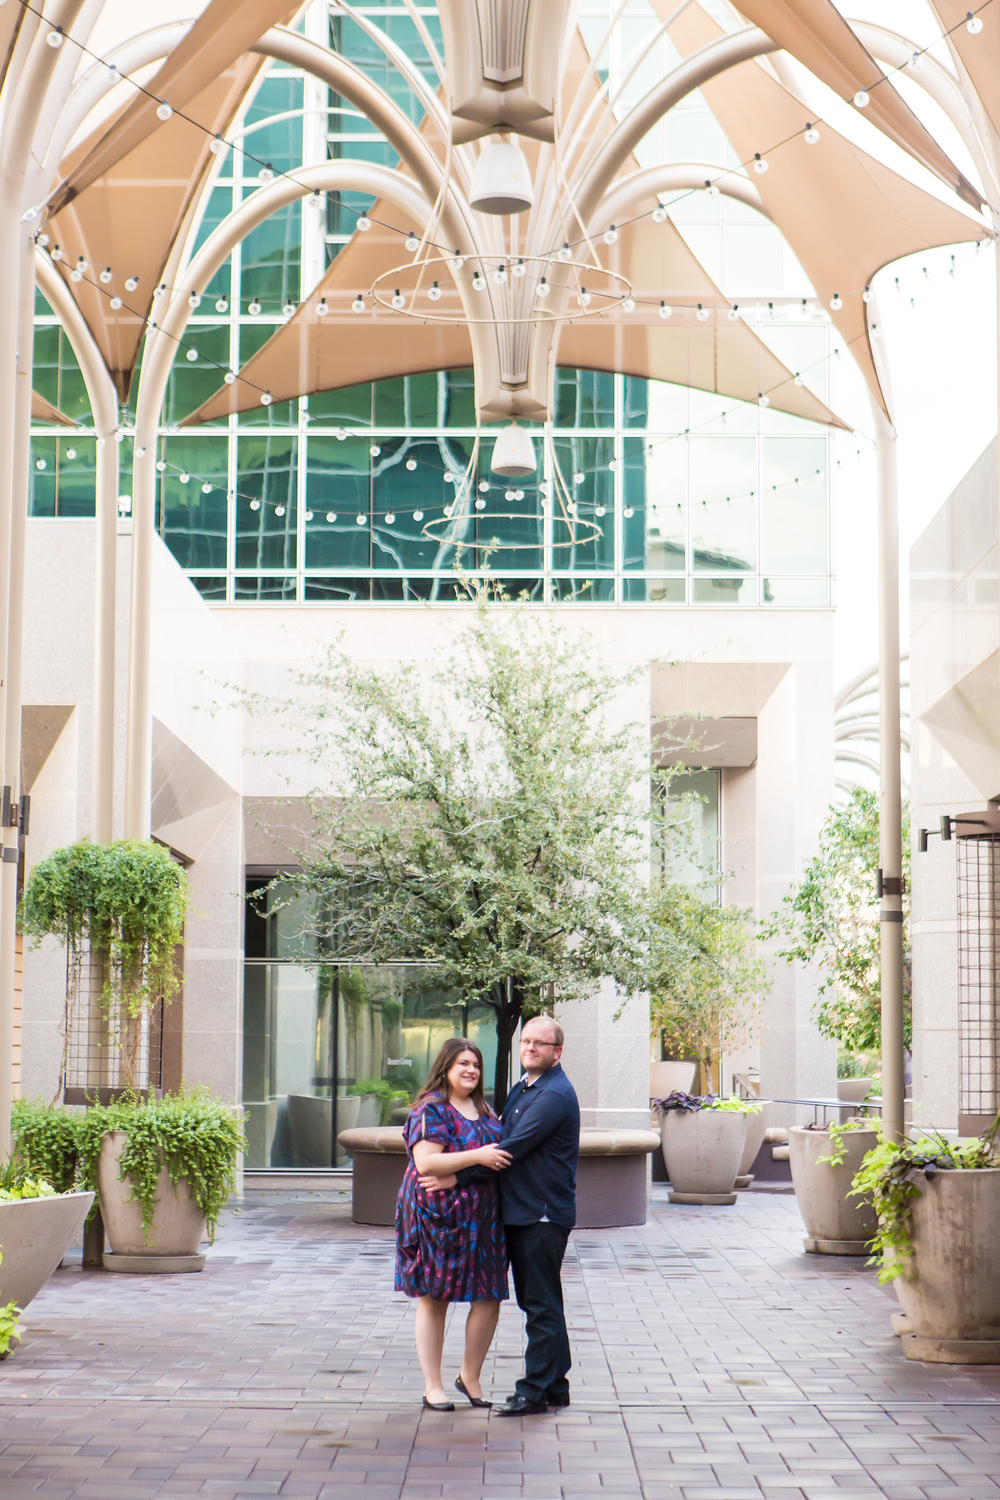 FLYTOGRAPHER Vacation Photographer in Scottsdale - Annelise